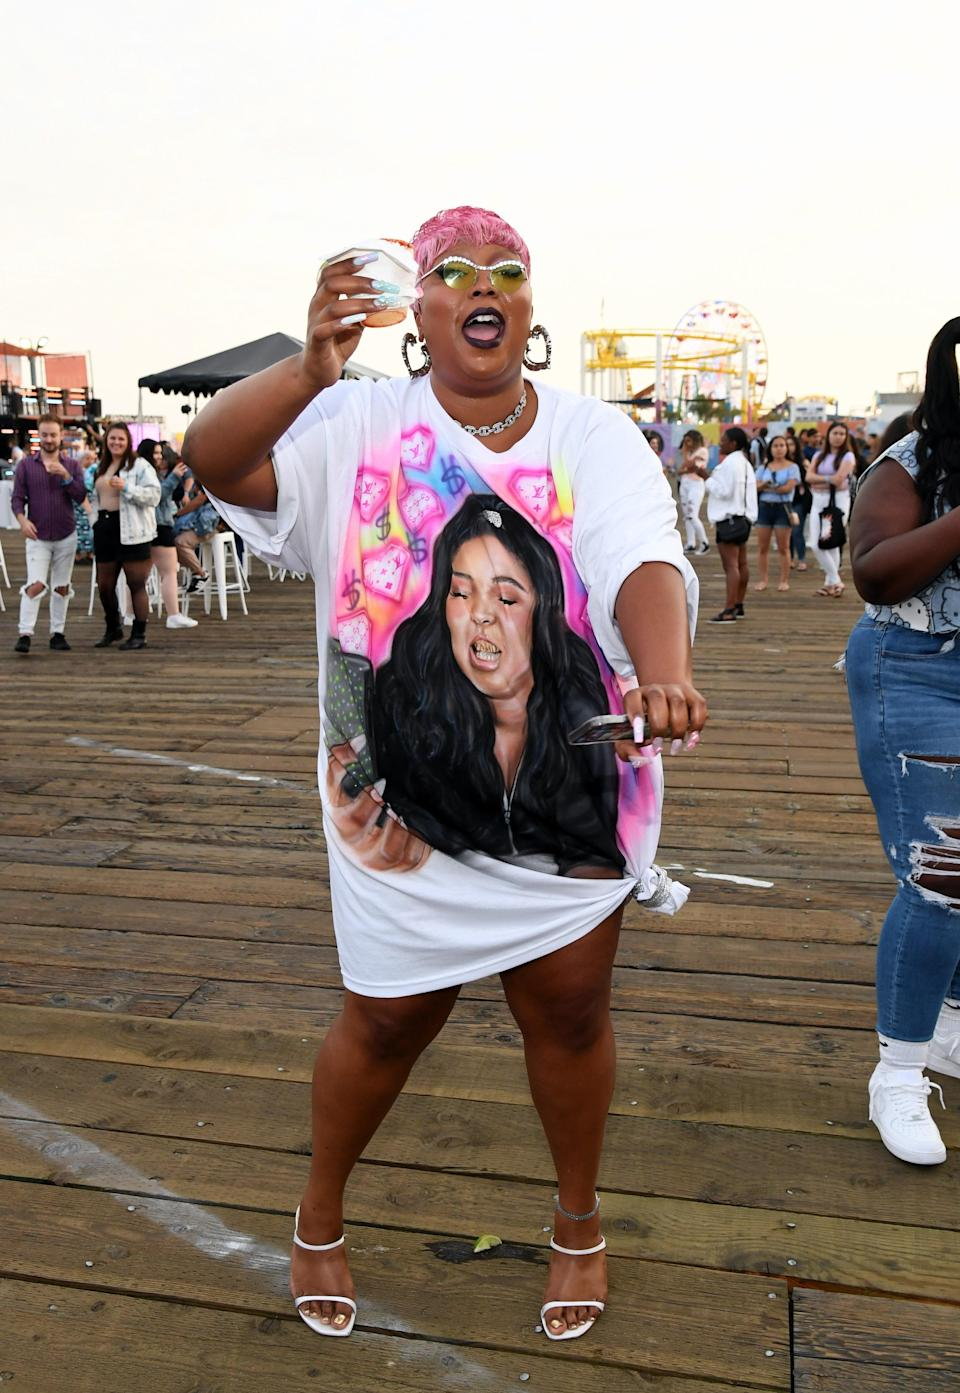 """Lizzo turned up to the JBL True Summer event on the world-famous Santa Monica Pier in a pink pixie cut and a T<a href=""""https://www.teenvogue.com/story/lizzo-t-shirt-face?mbid=synd_yahoo_rss"""" rel=""""nofollow noopener"""" target=""""_blank"""" data-ylk=""""slk:-shirt dress with her own face on it"""" class=""""link rapid-noclick-resp"""">-shirt dress with her own face on it</a>. Lizzo is clearly her own biggest fan, and we love it."""